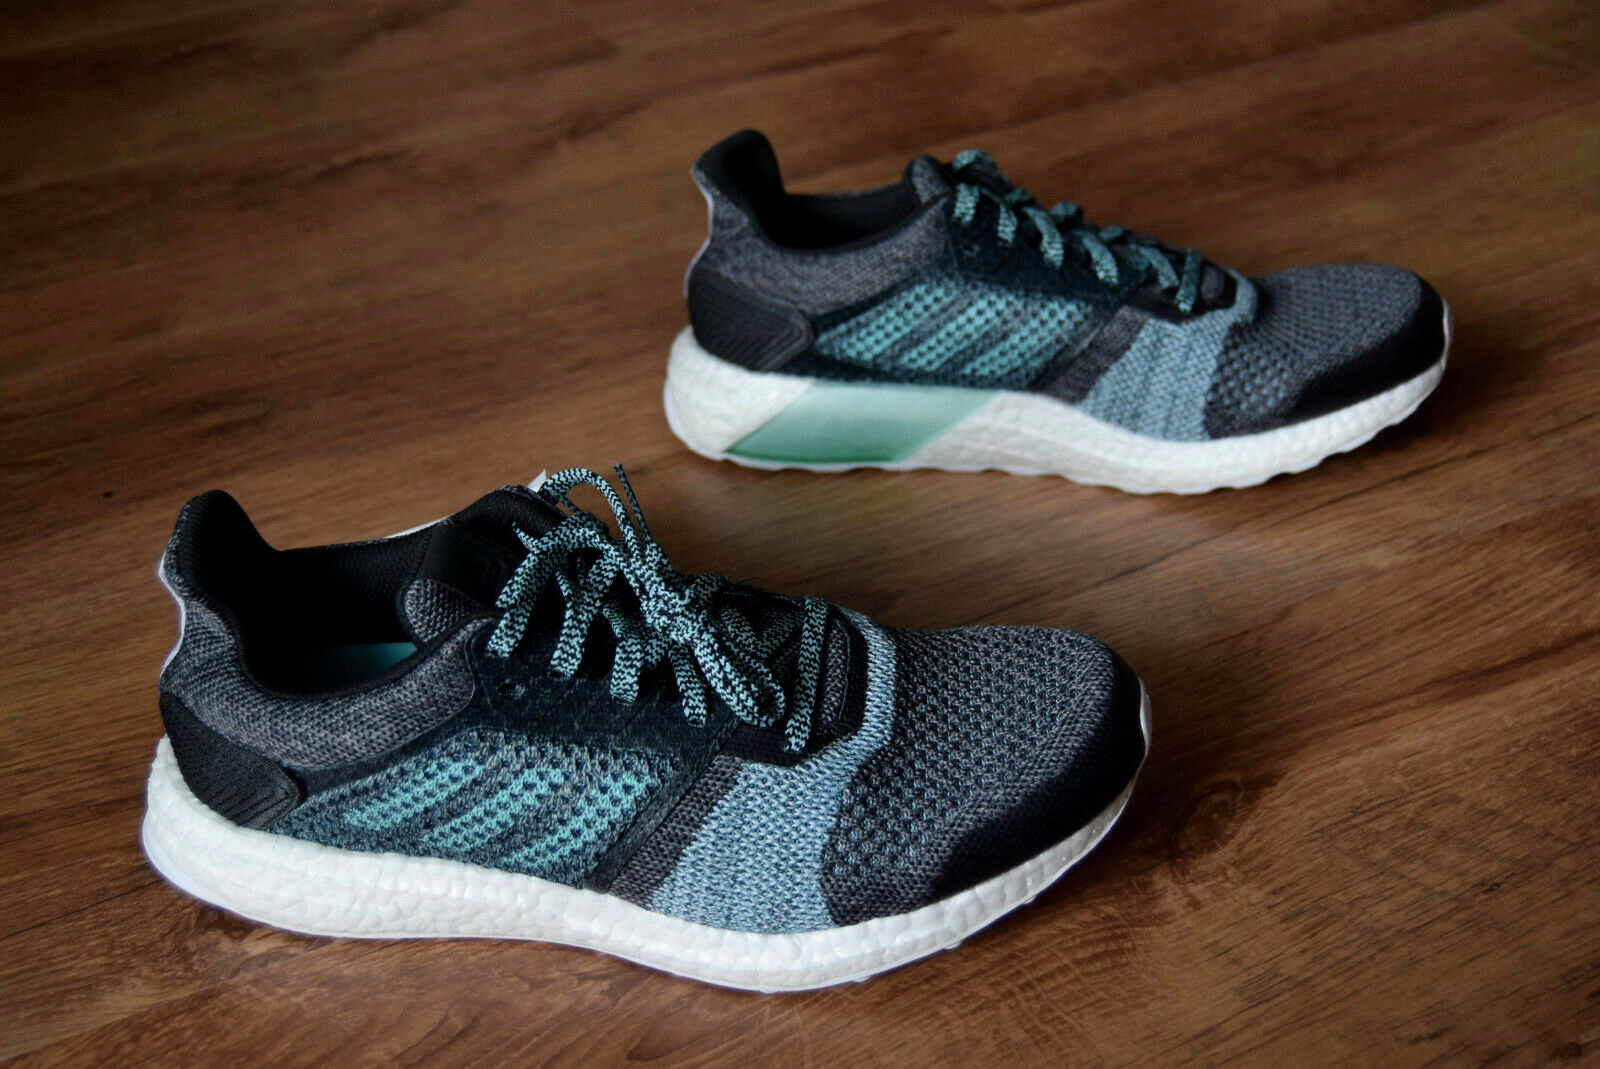 big sale clearance sale sleek Adidas Ultra Boost ST Parley 43 45 46.5 47 DB0925 energy  cOnSorTiumランニングシューズのeBay公認海外通販|セカイモン